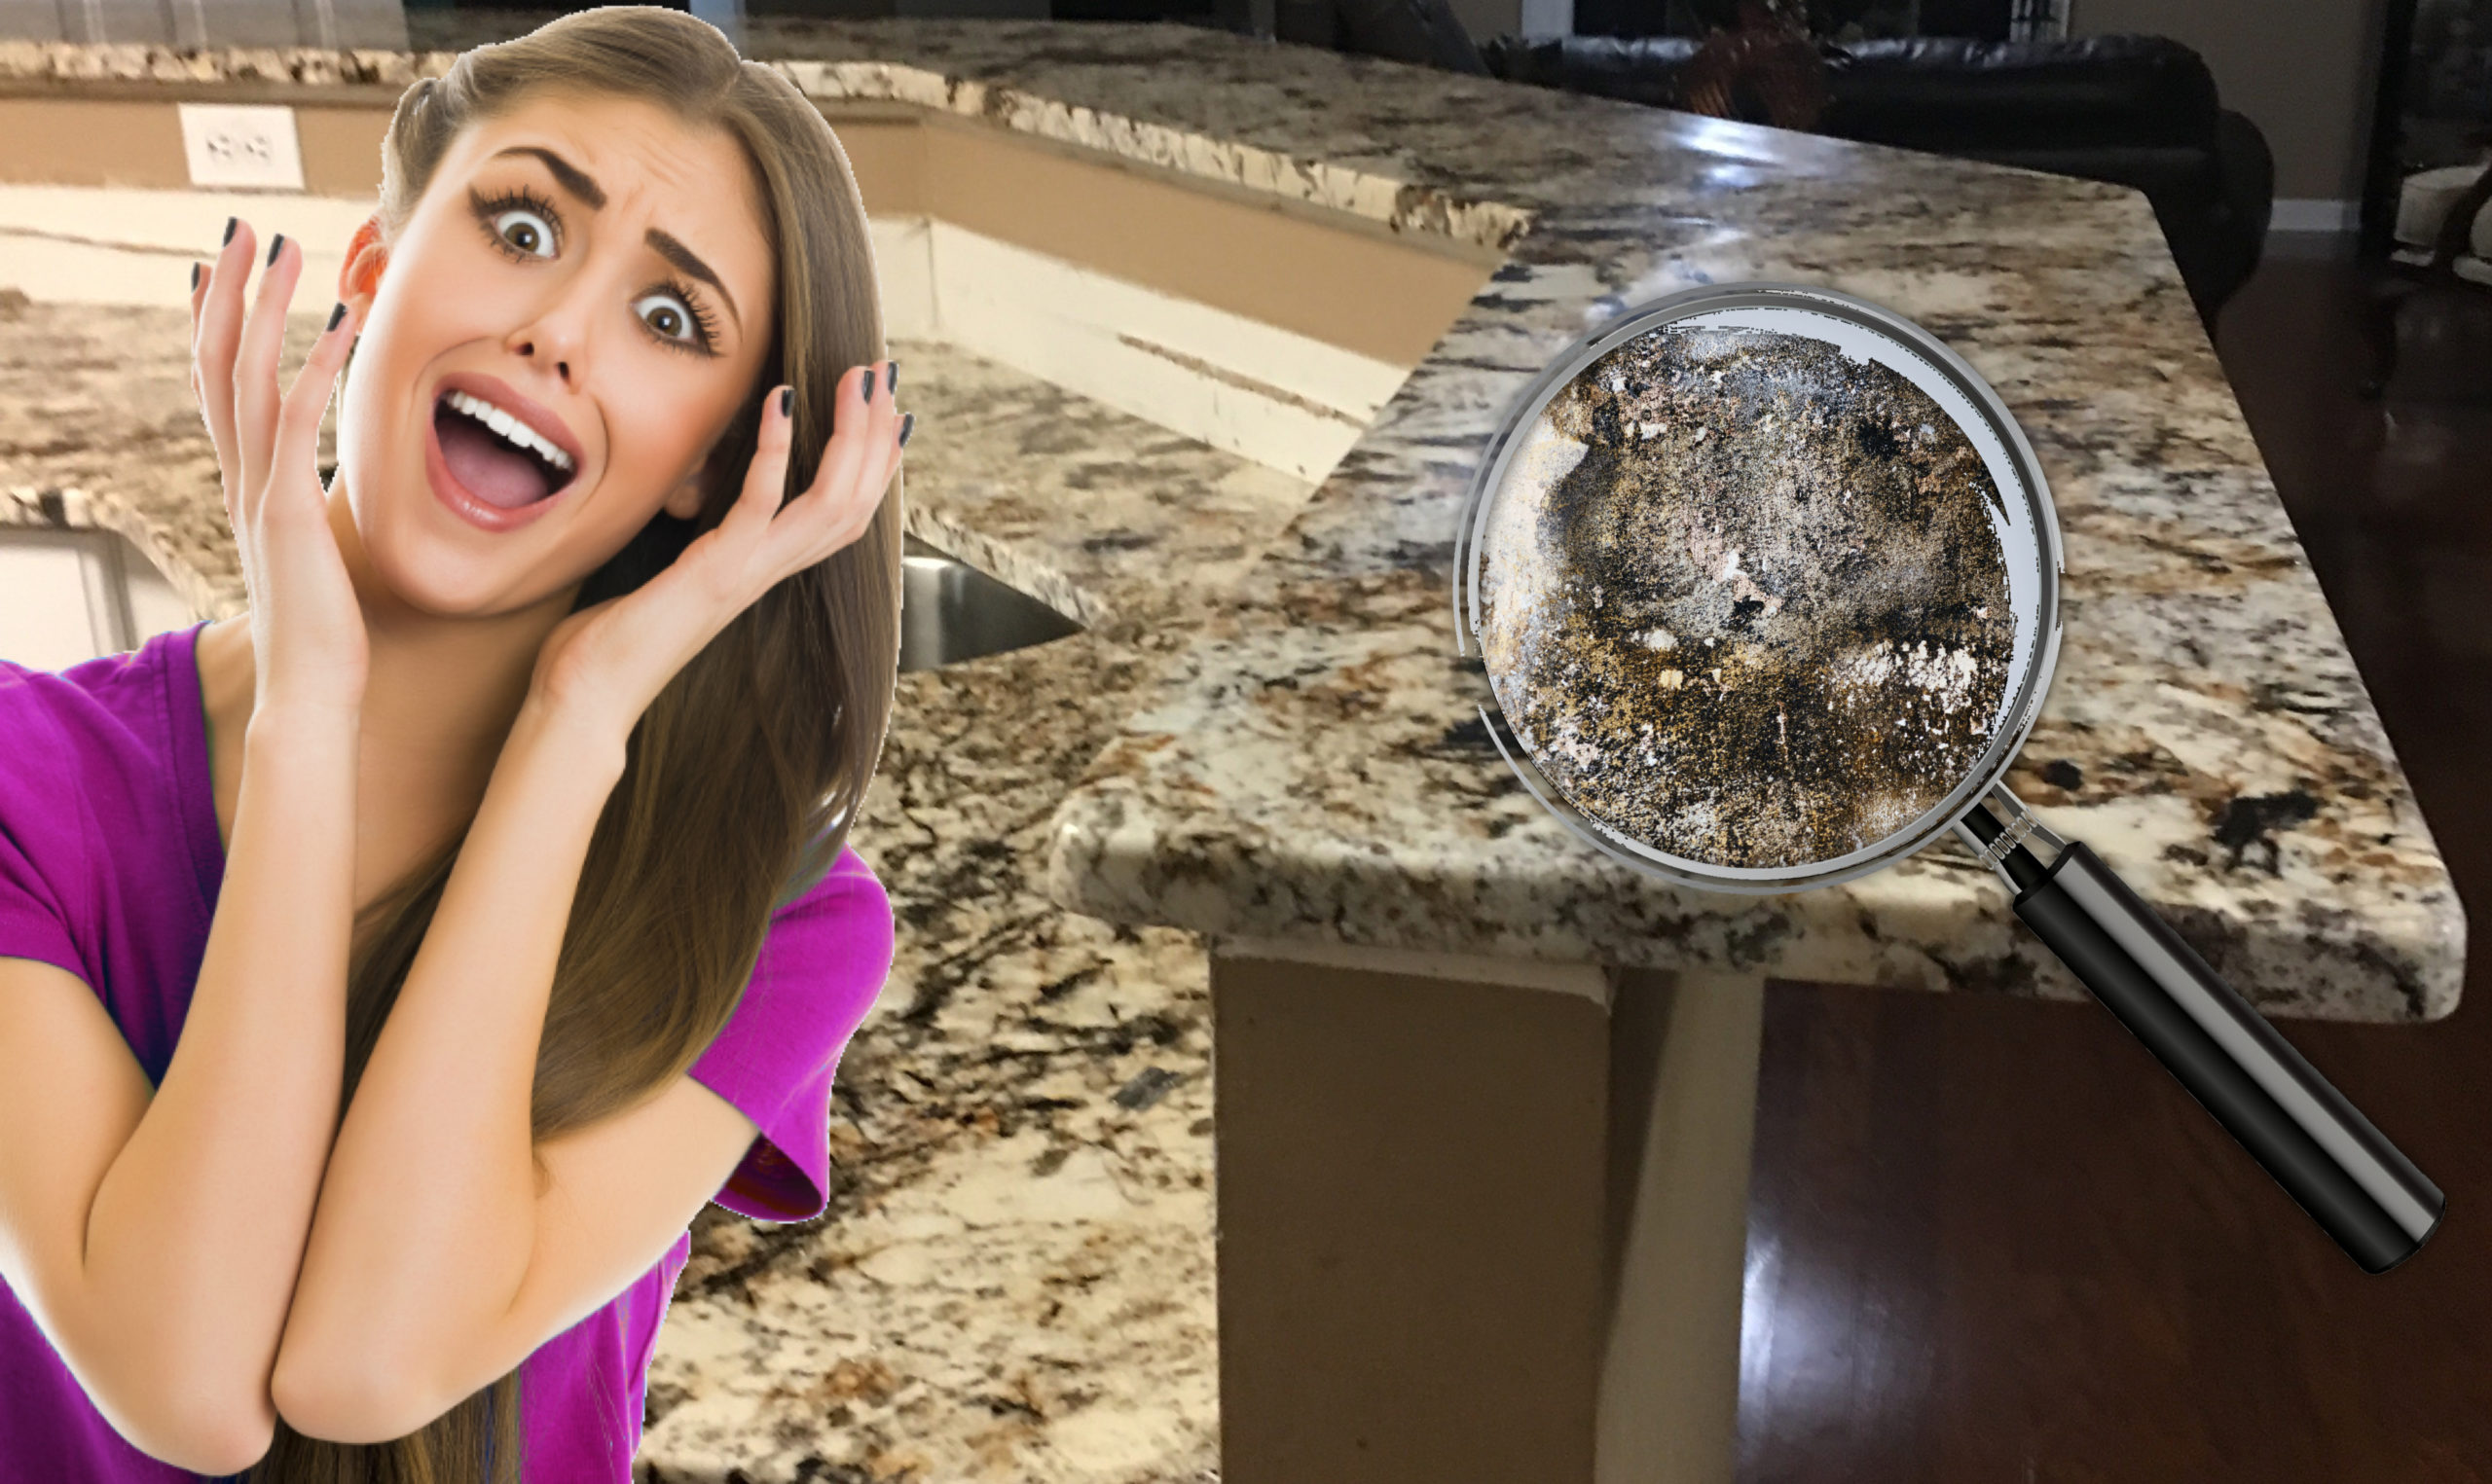 Health Concerns and Risks Associated with Old Countertops and Surfaces